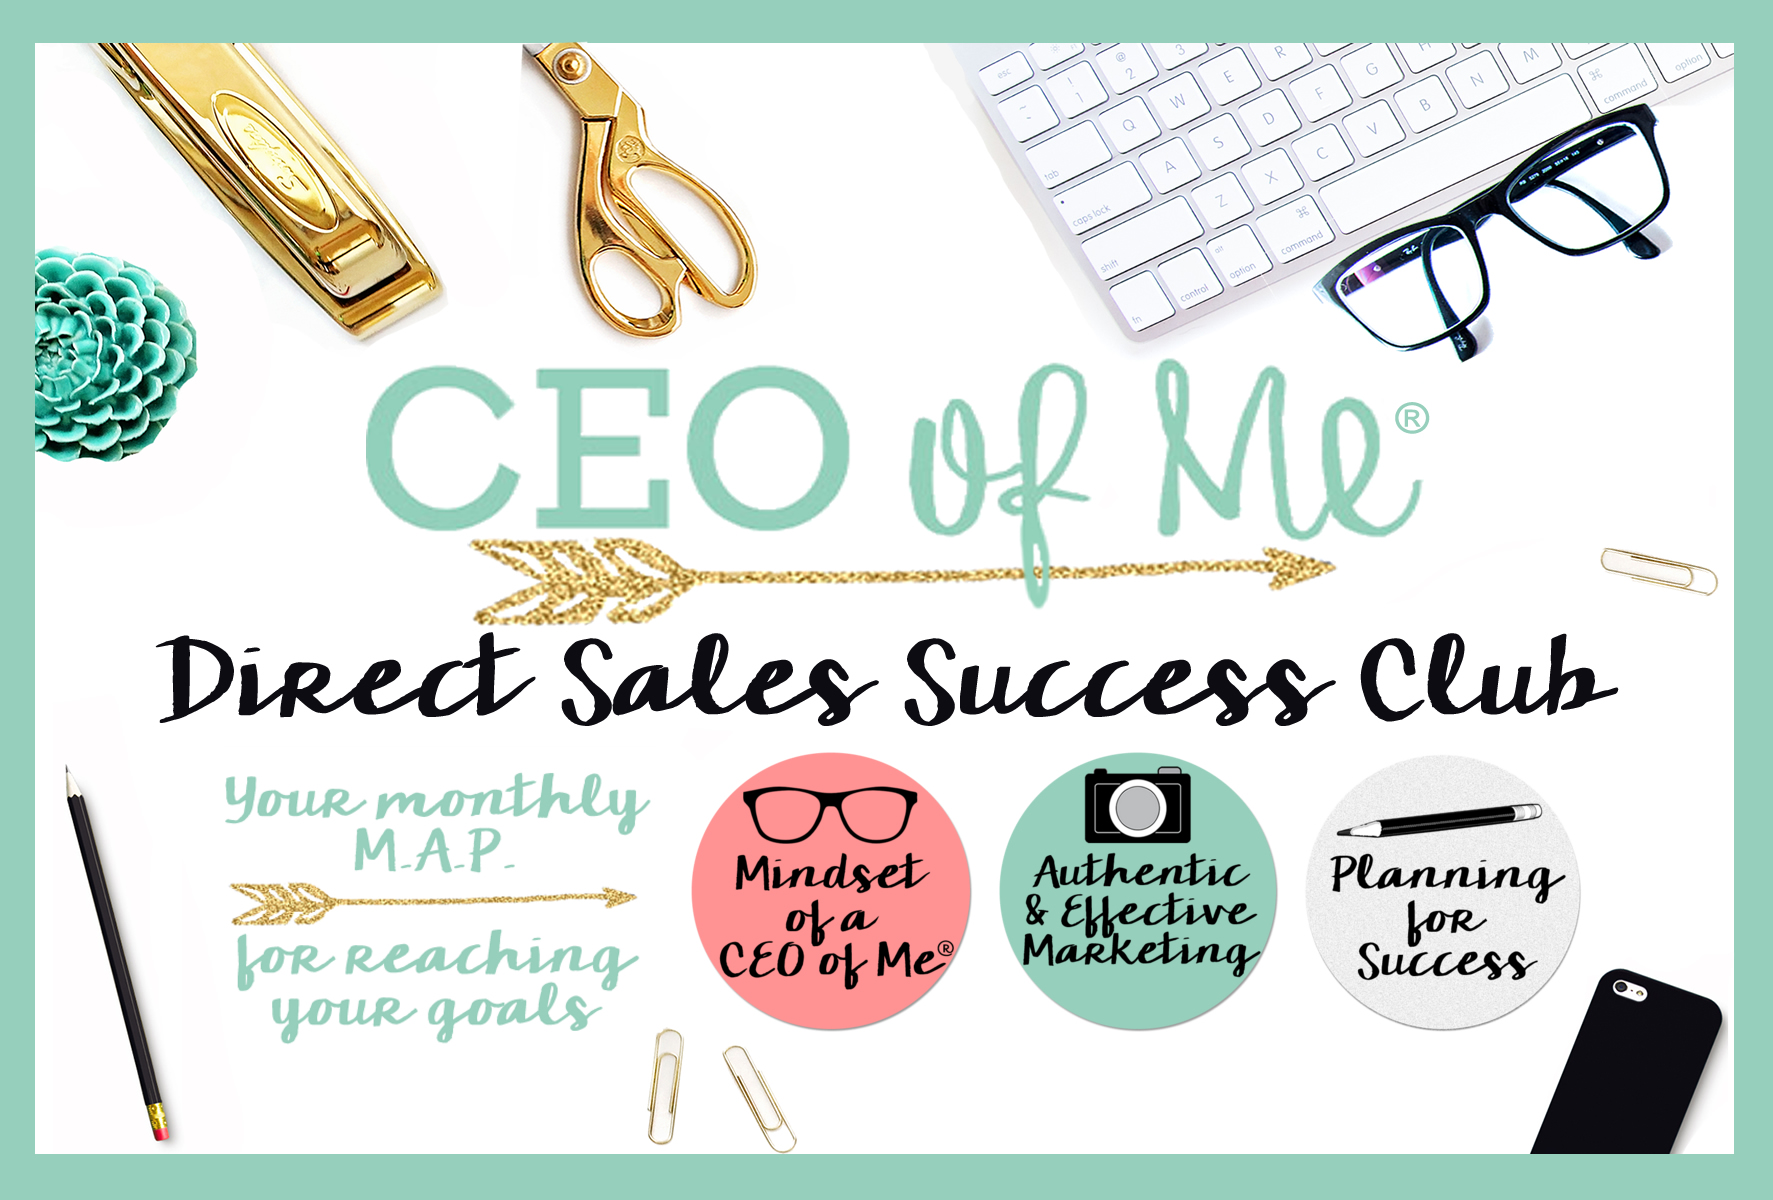 Direct Sales Network Marketing Success Club Ceo Of Me